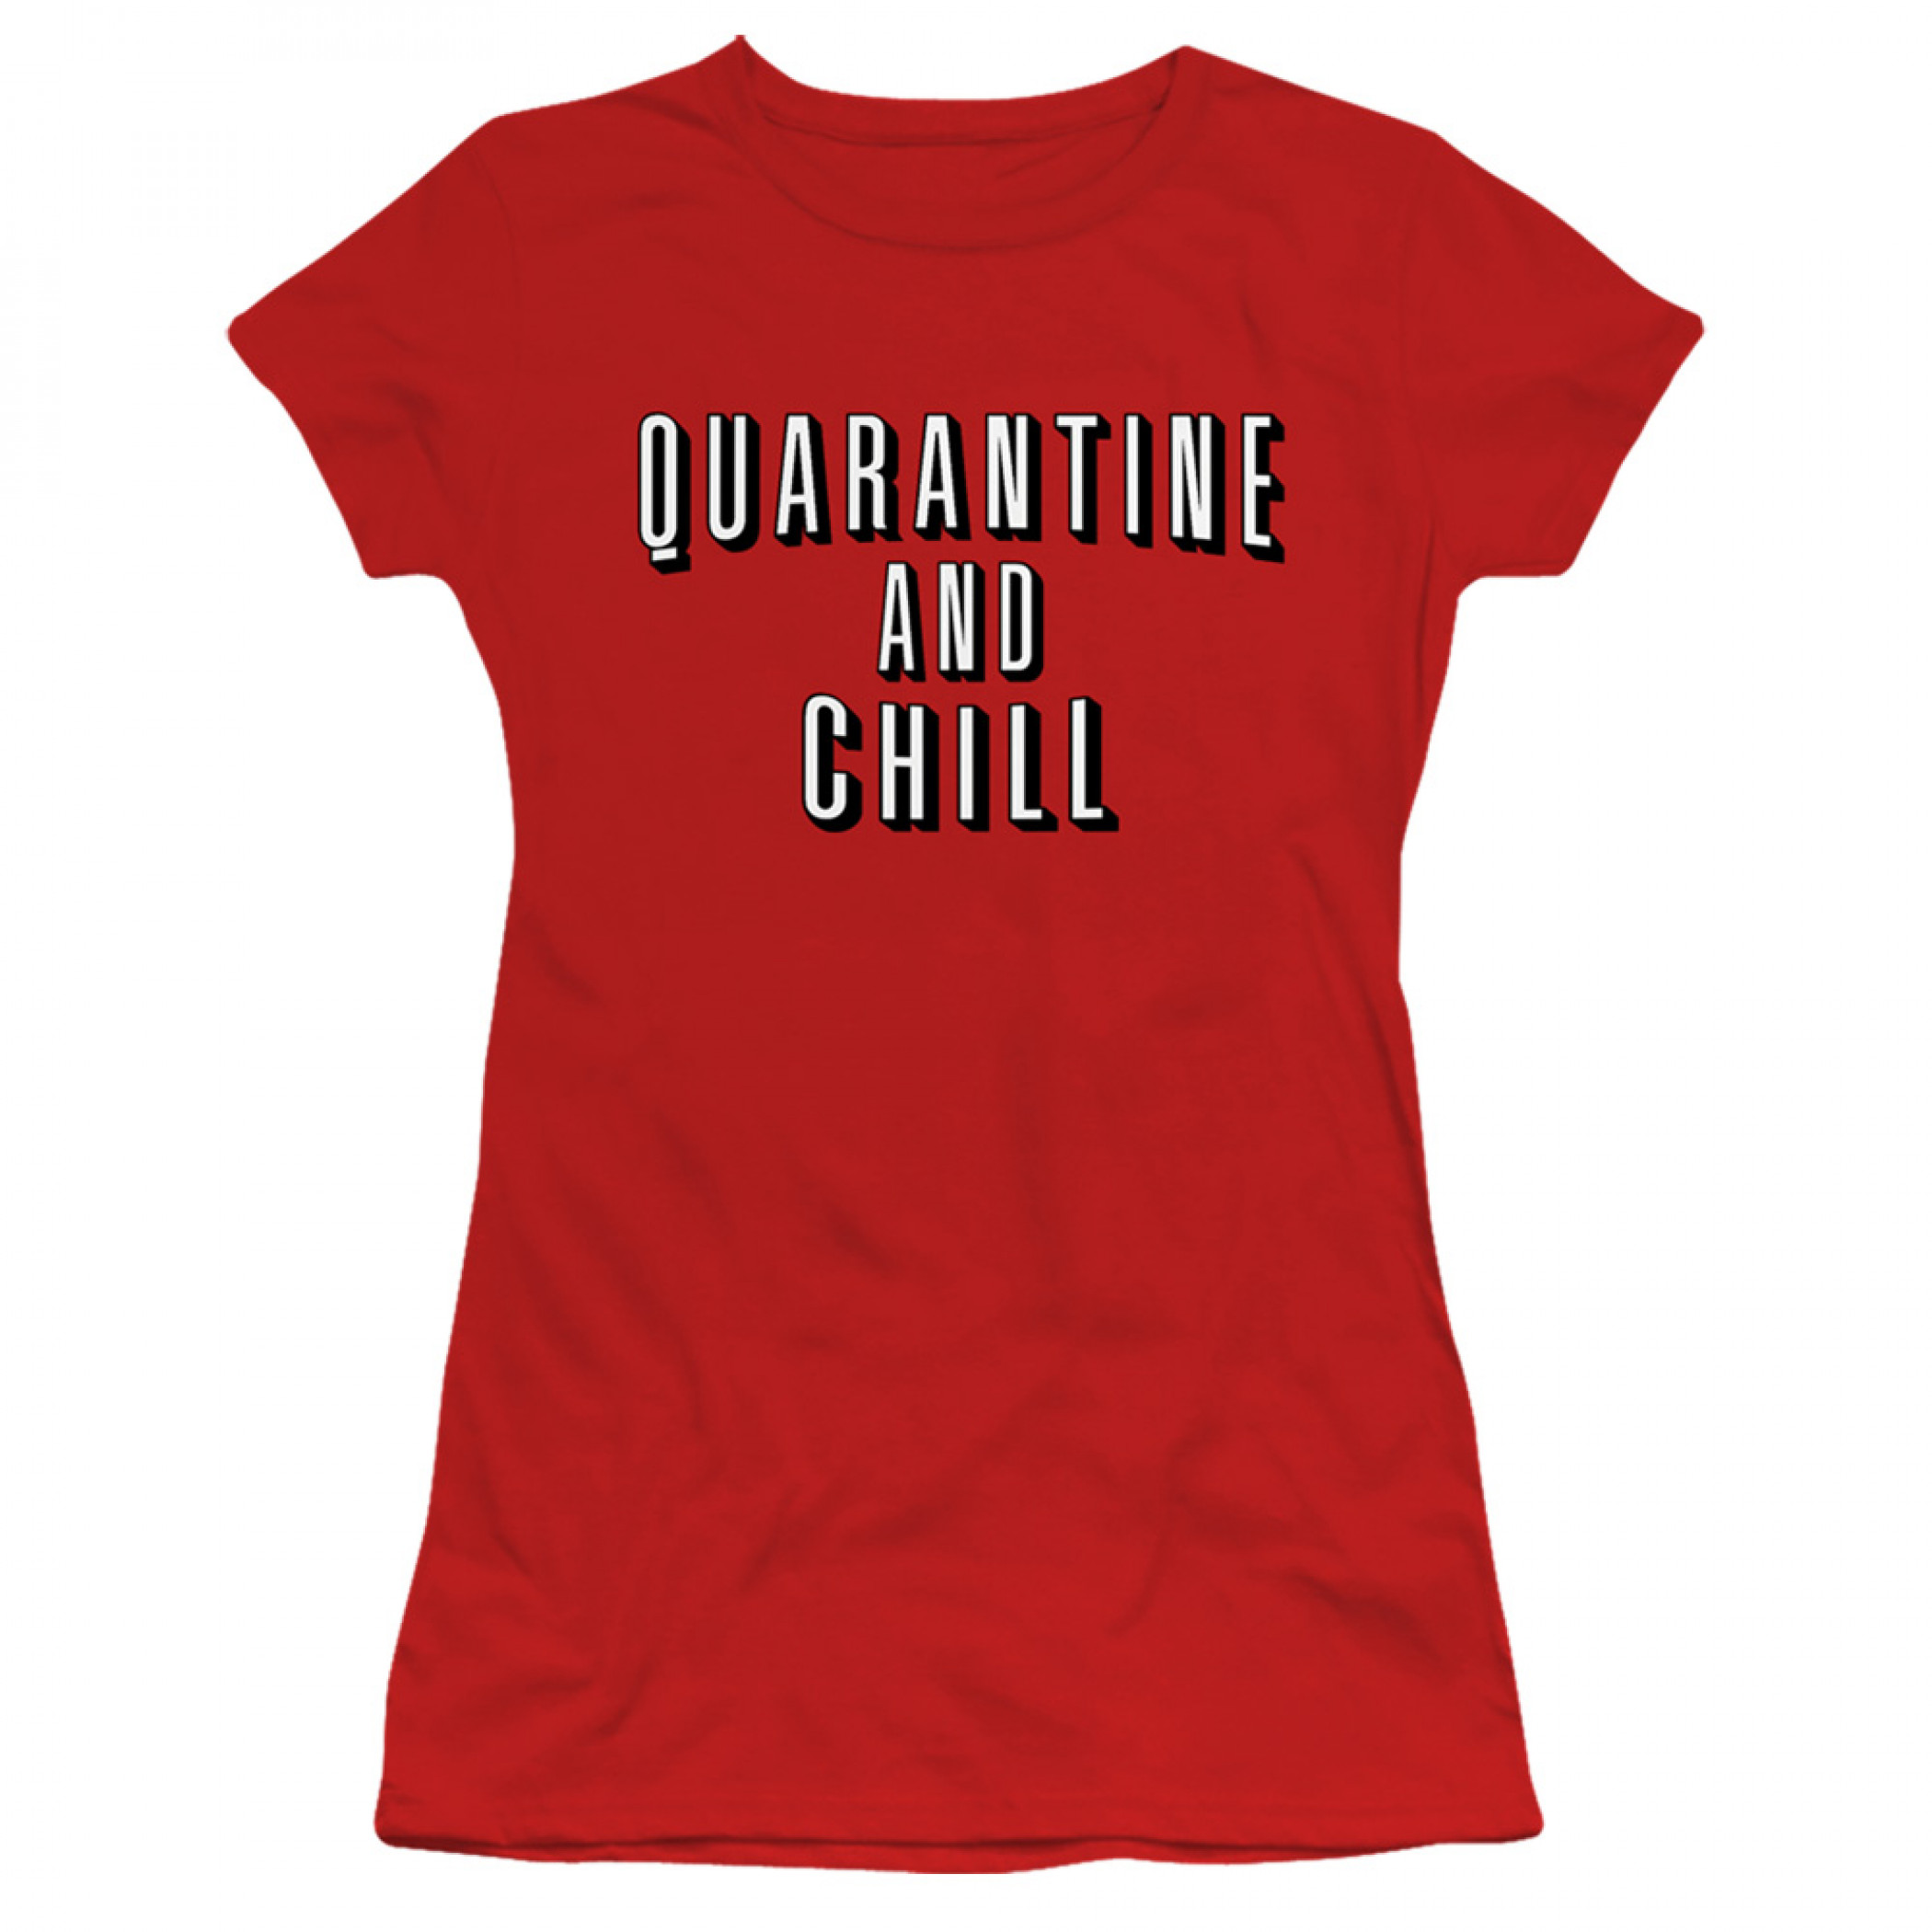 Quarantine and Chill Social Distancing Women's T-Shirt